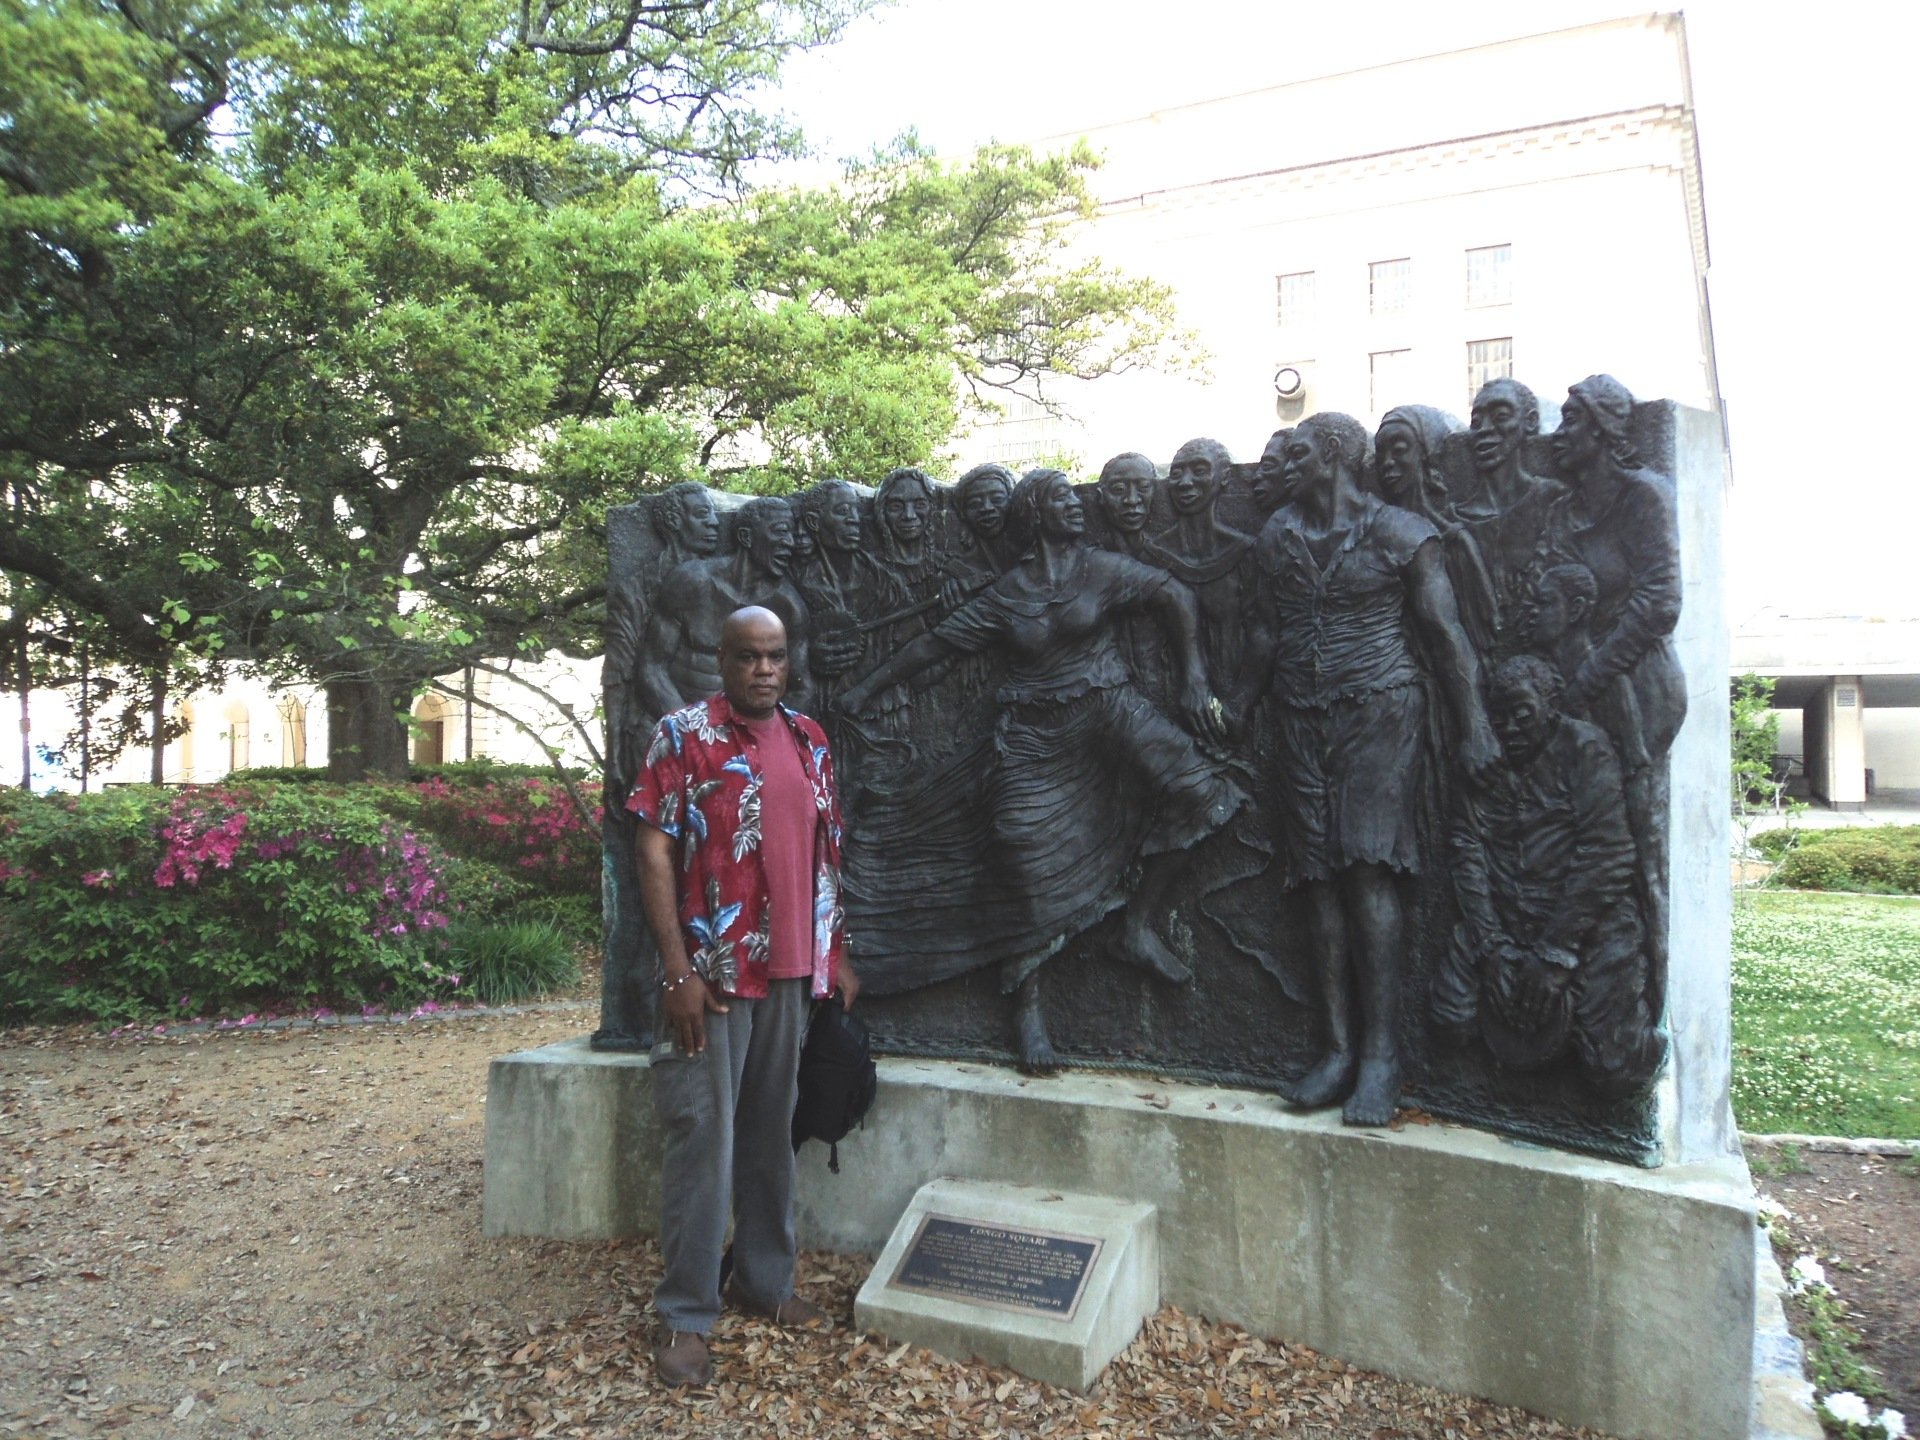 VISITING CONGO SQUARE IN NEW ORLEANS